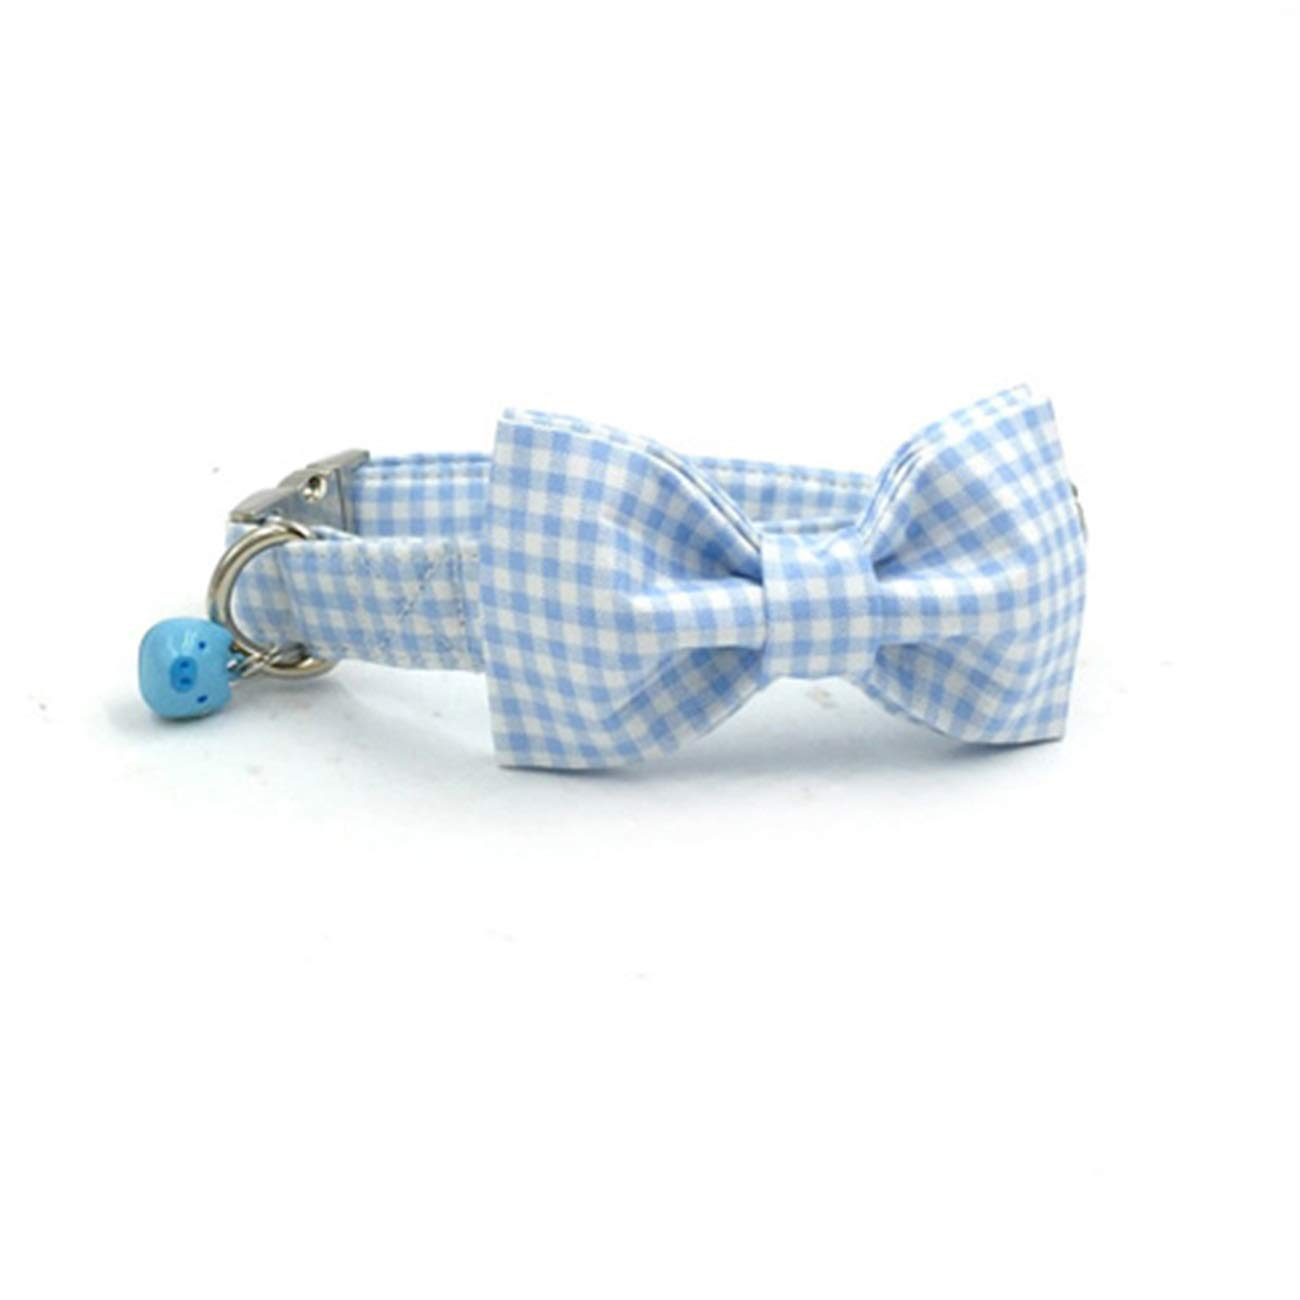 Collar with bowtie XSBeatybag bluee Plaid Dog Collar with bluee Pig Bell and Bow Cotton Dog&Cat Necklace Adjustable Dog Collars and Dog Leash Pet Supply Collar Bow and Leash M